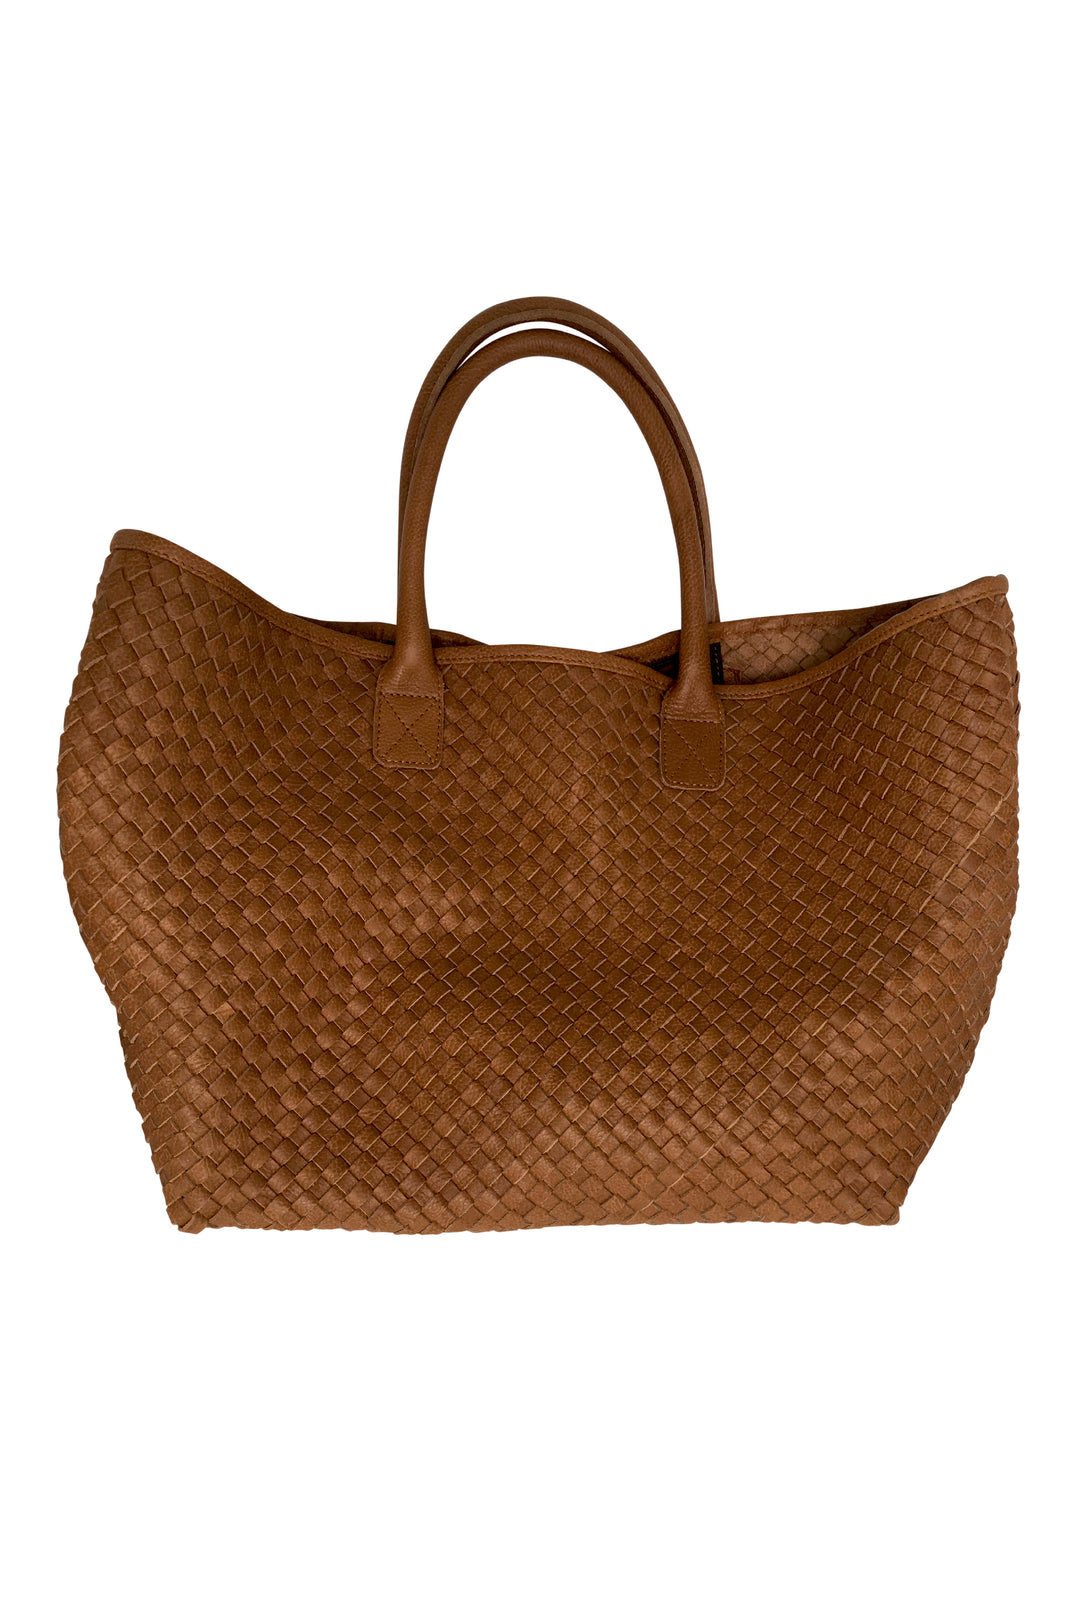 woven leather tote basket bag tan caramel